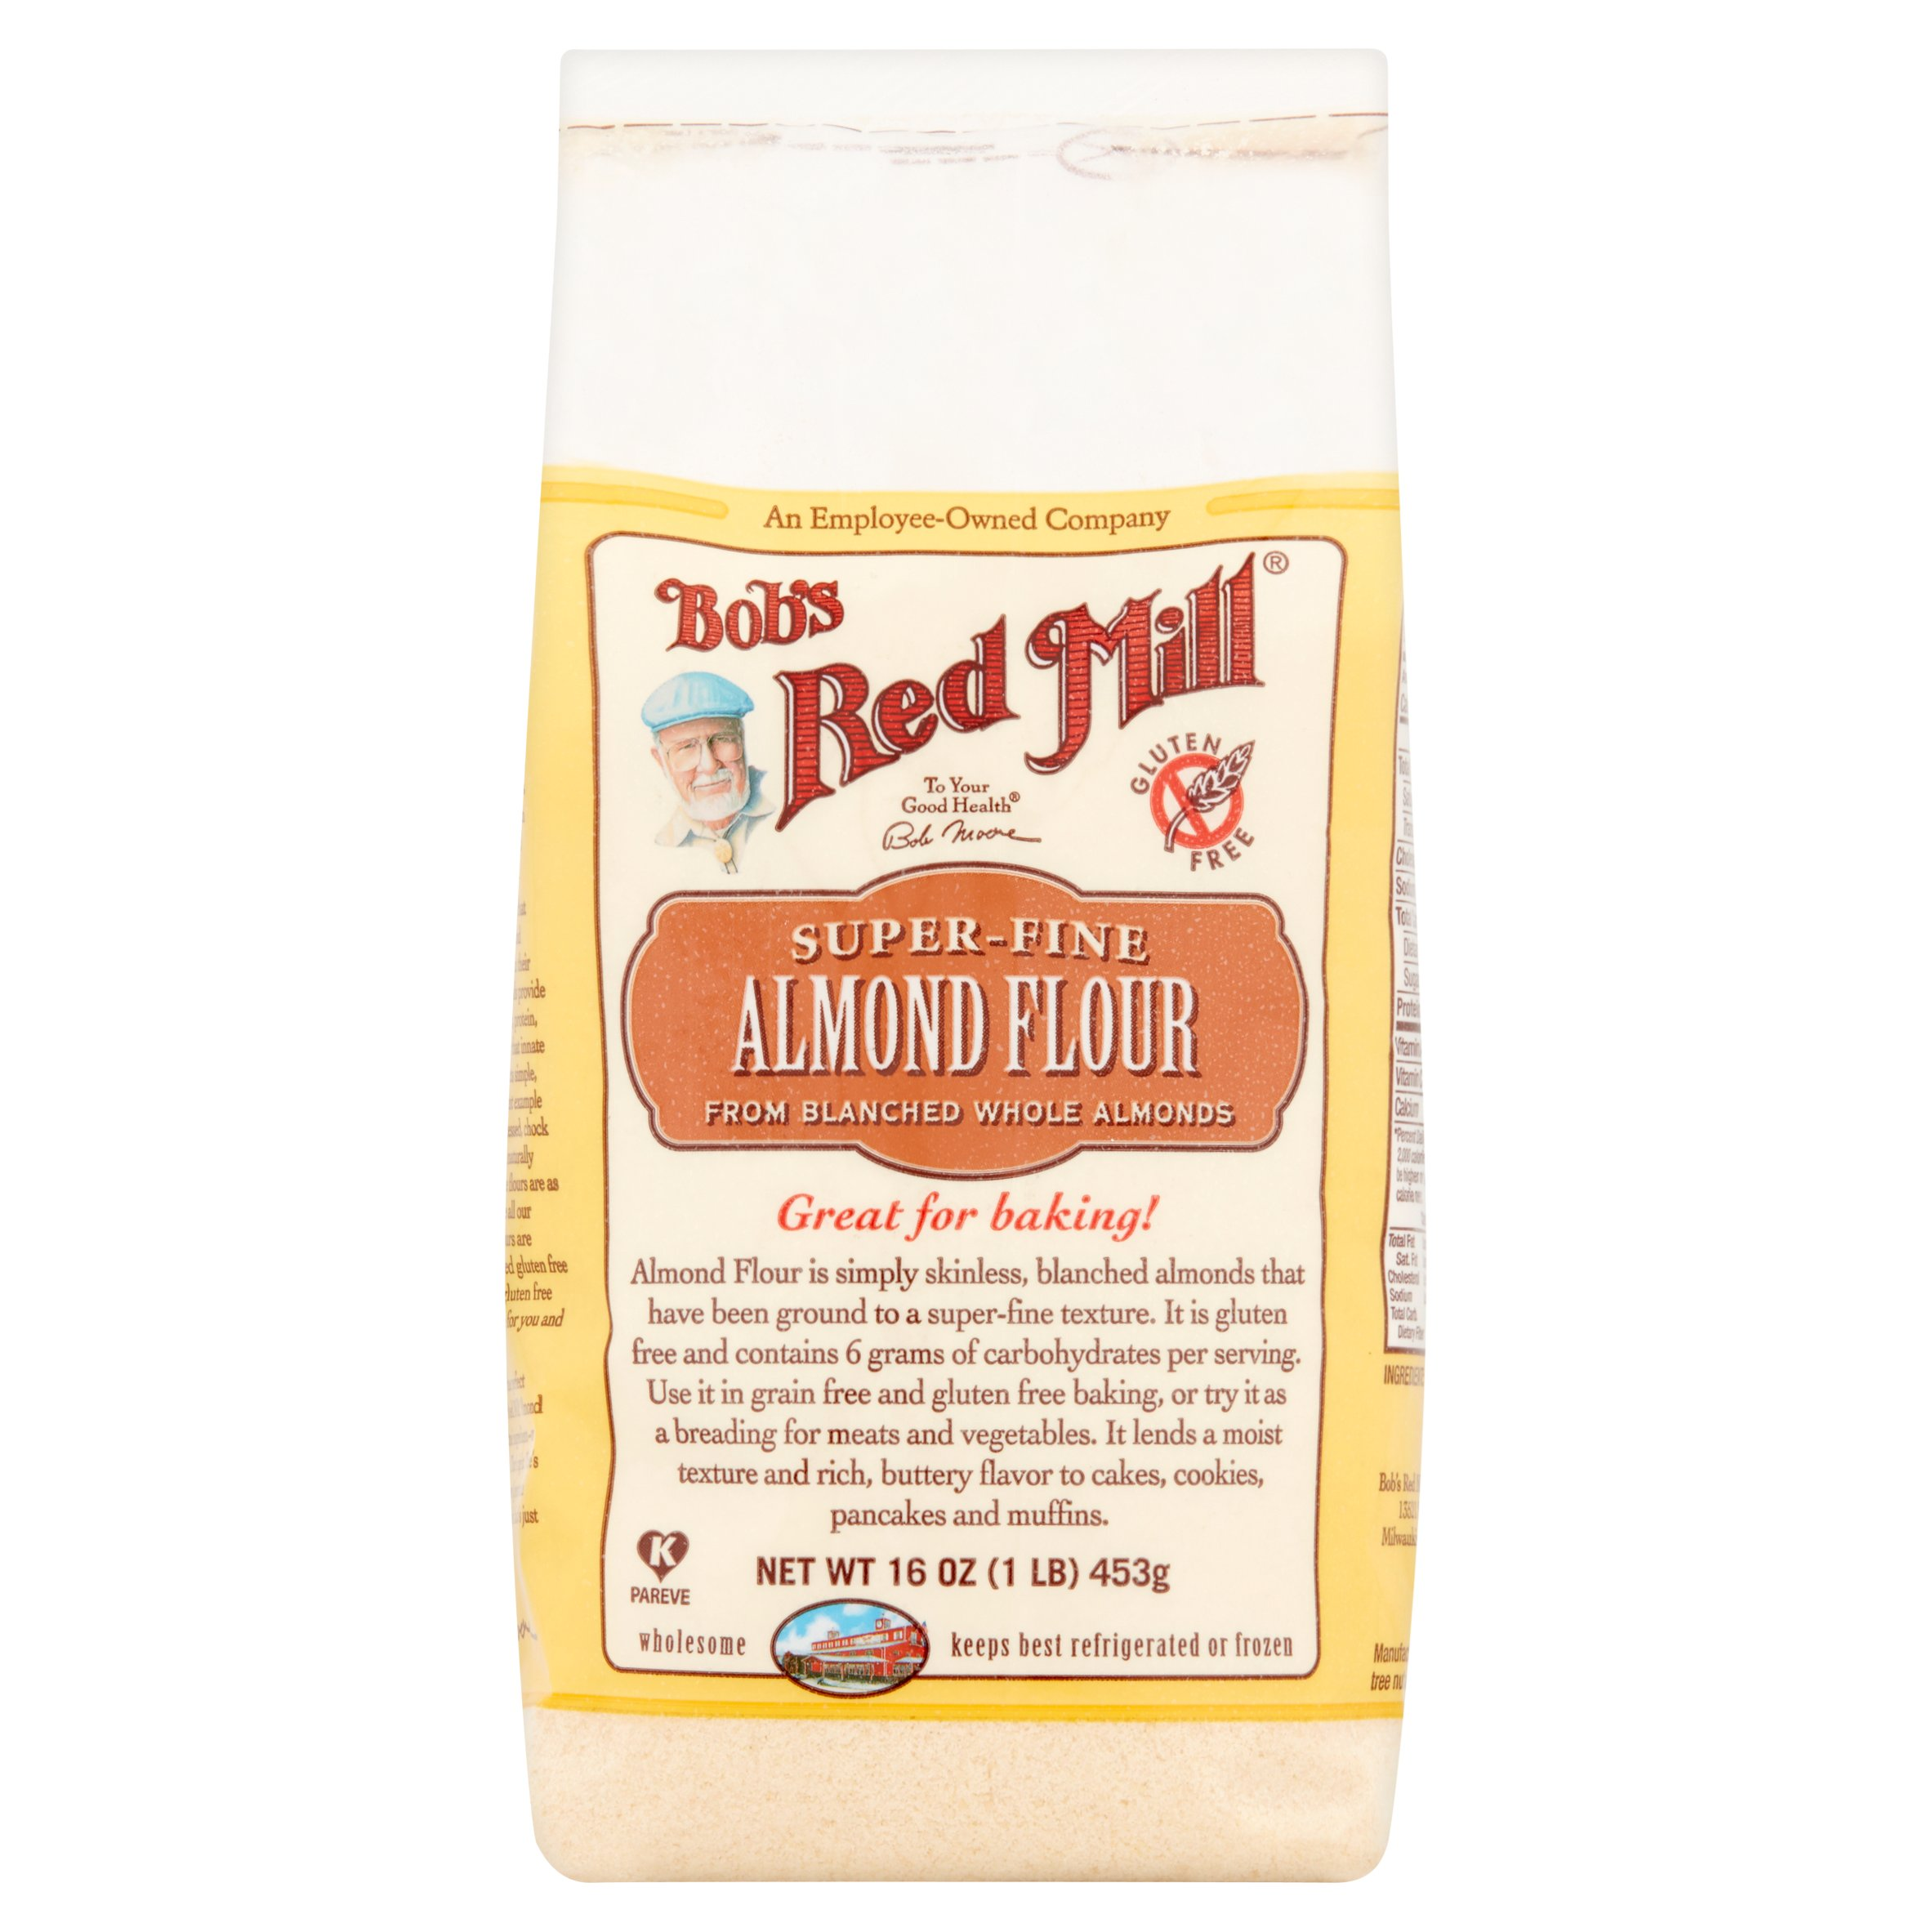 Bob's Red Mill Super-Fine Almond Flour, 16 oz